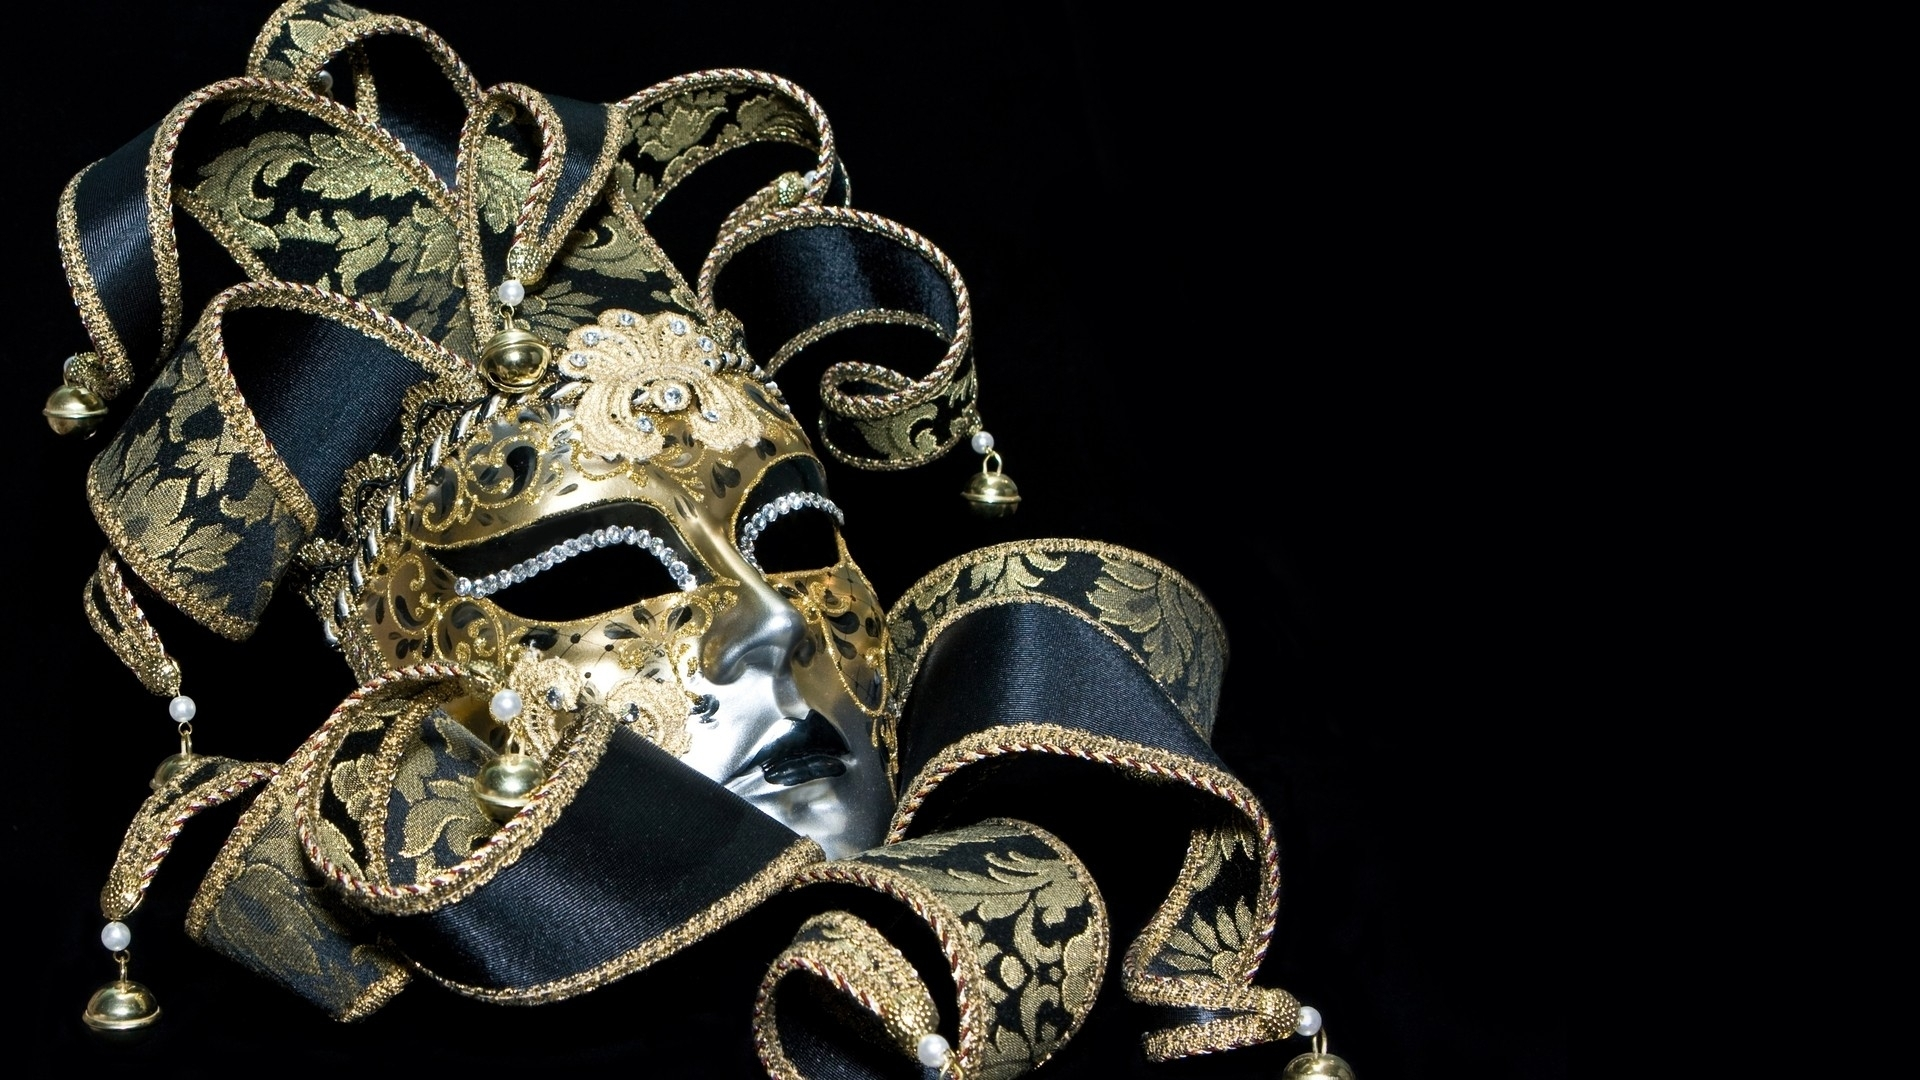 Cool Masquerade Mask Wallpaper